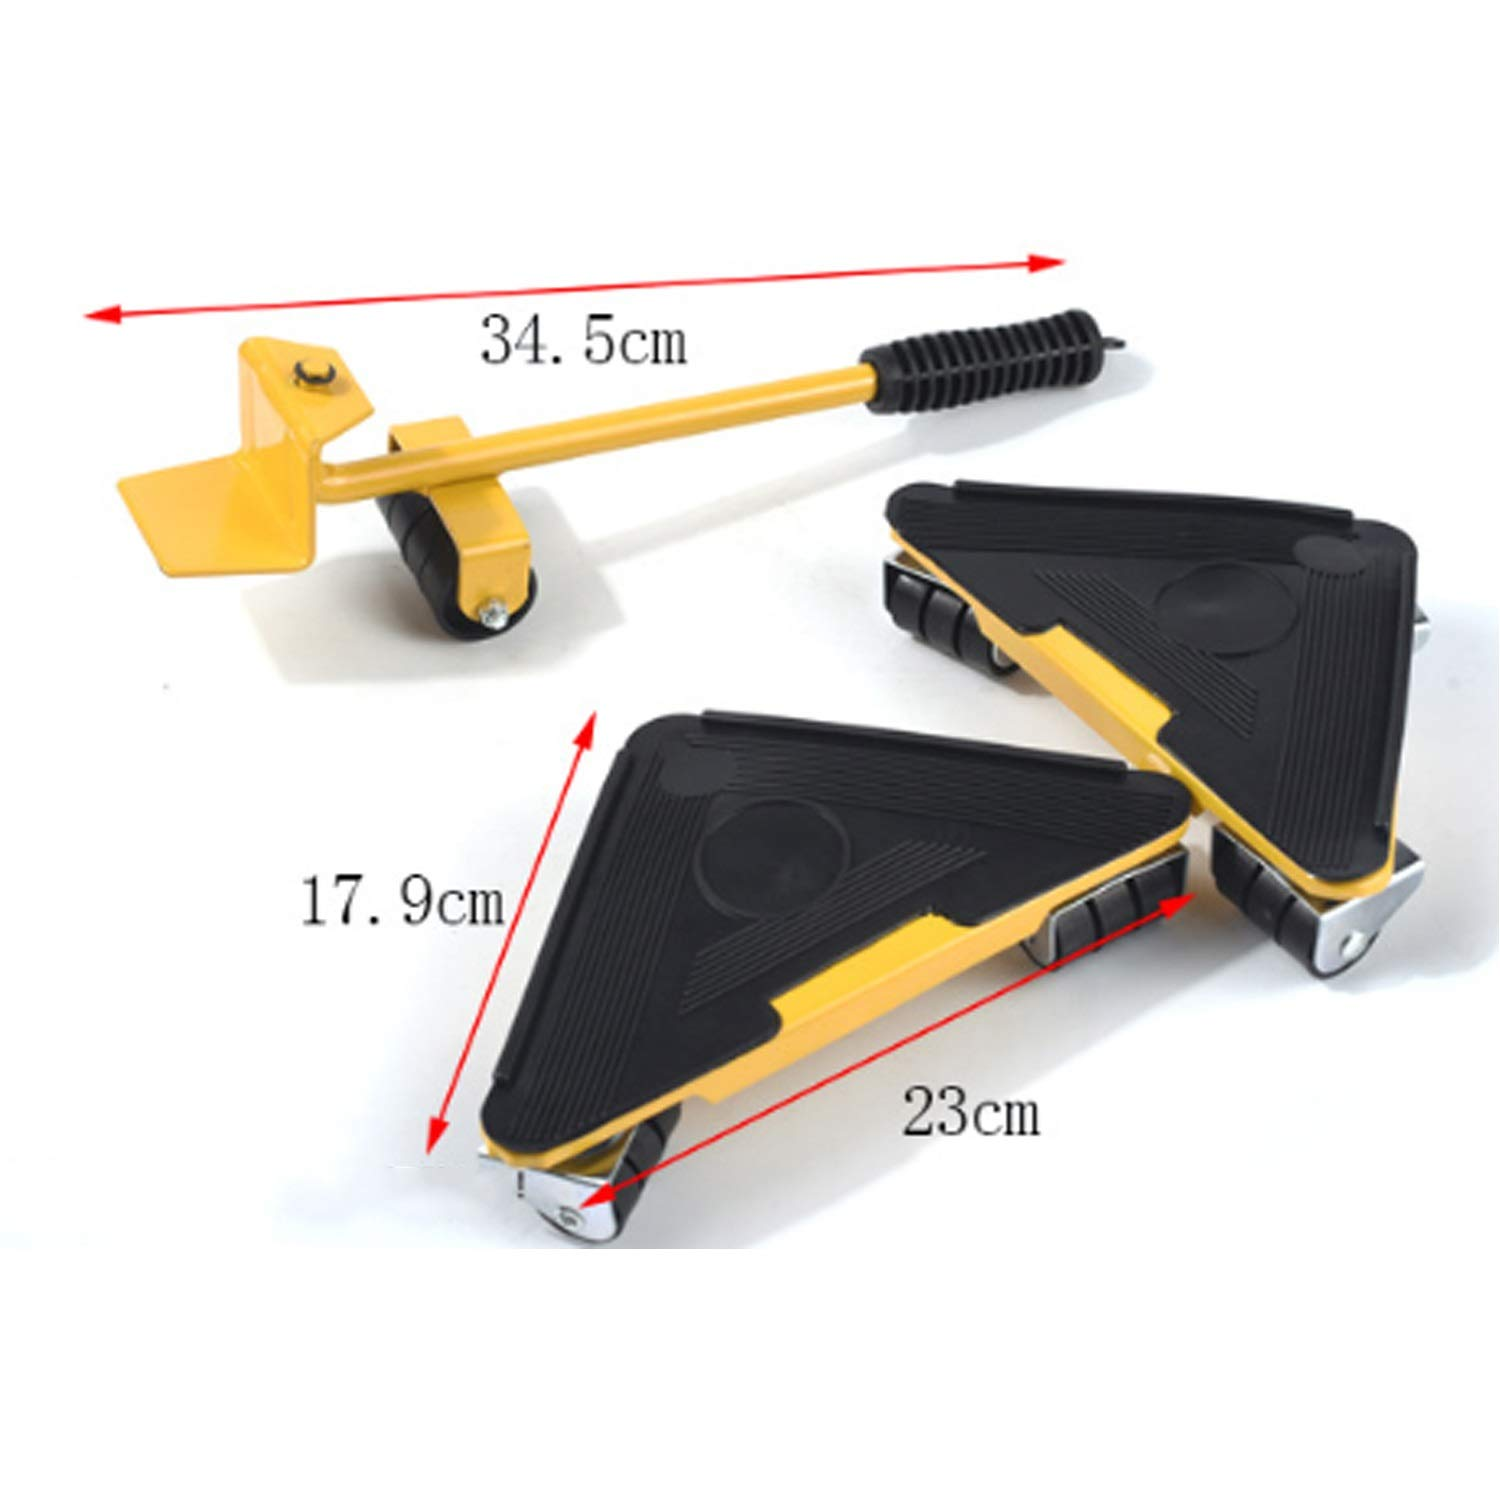 Your only family Practical Can Bear 400-500KG Triangular Moving Device Triangle Iron Mover with Universal Wheel Movable Portable Easy to Move Heavy Goods and Furniture Durable (Color : Yellow) by Your only family (Image #7)